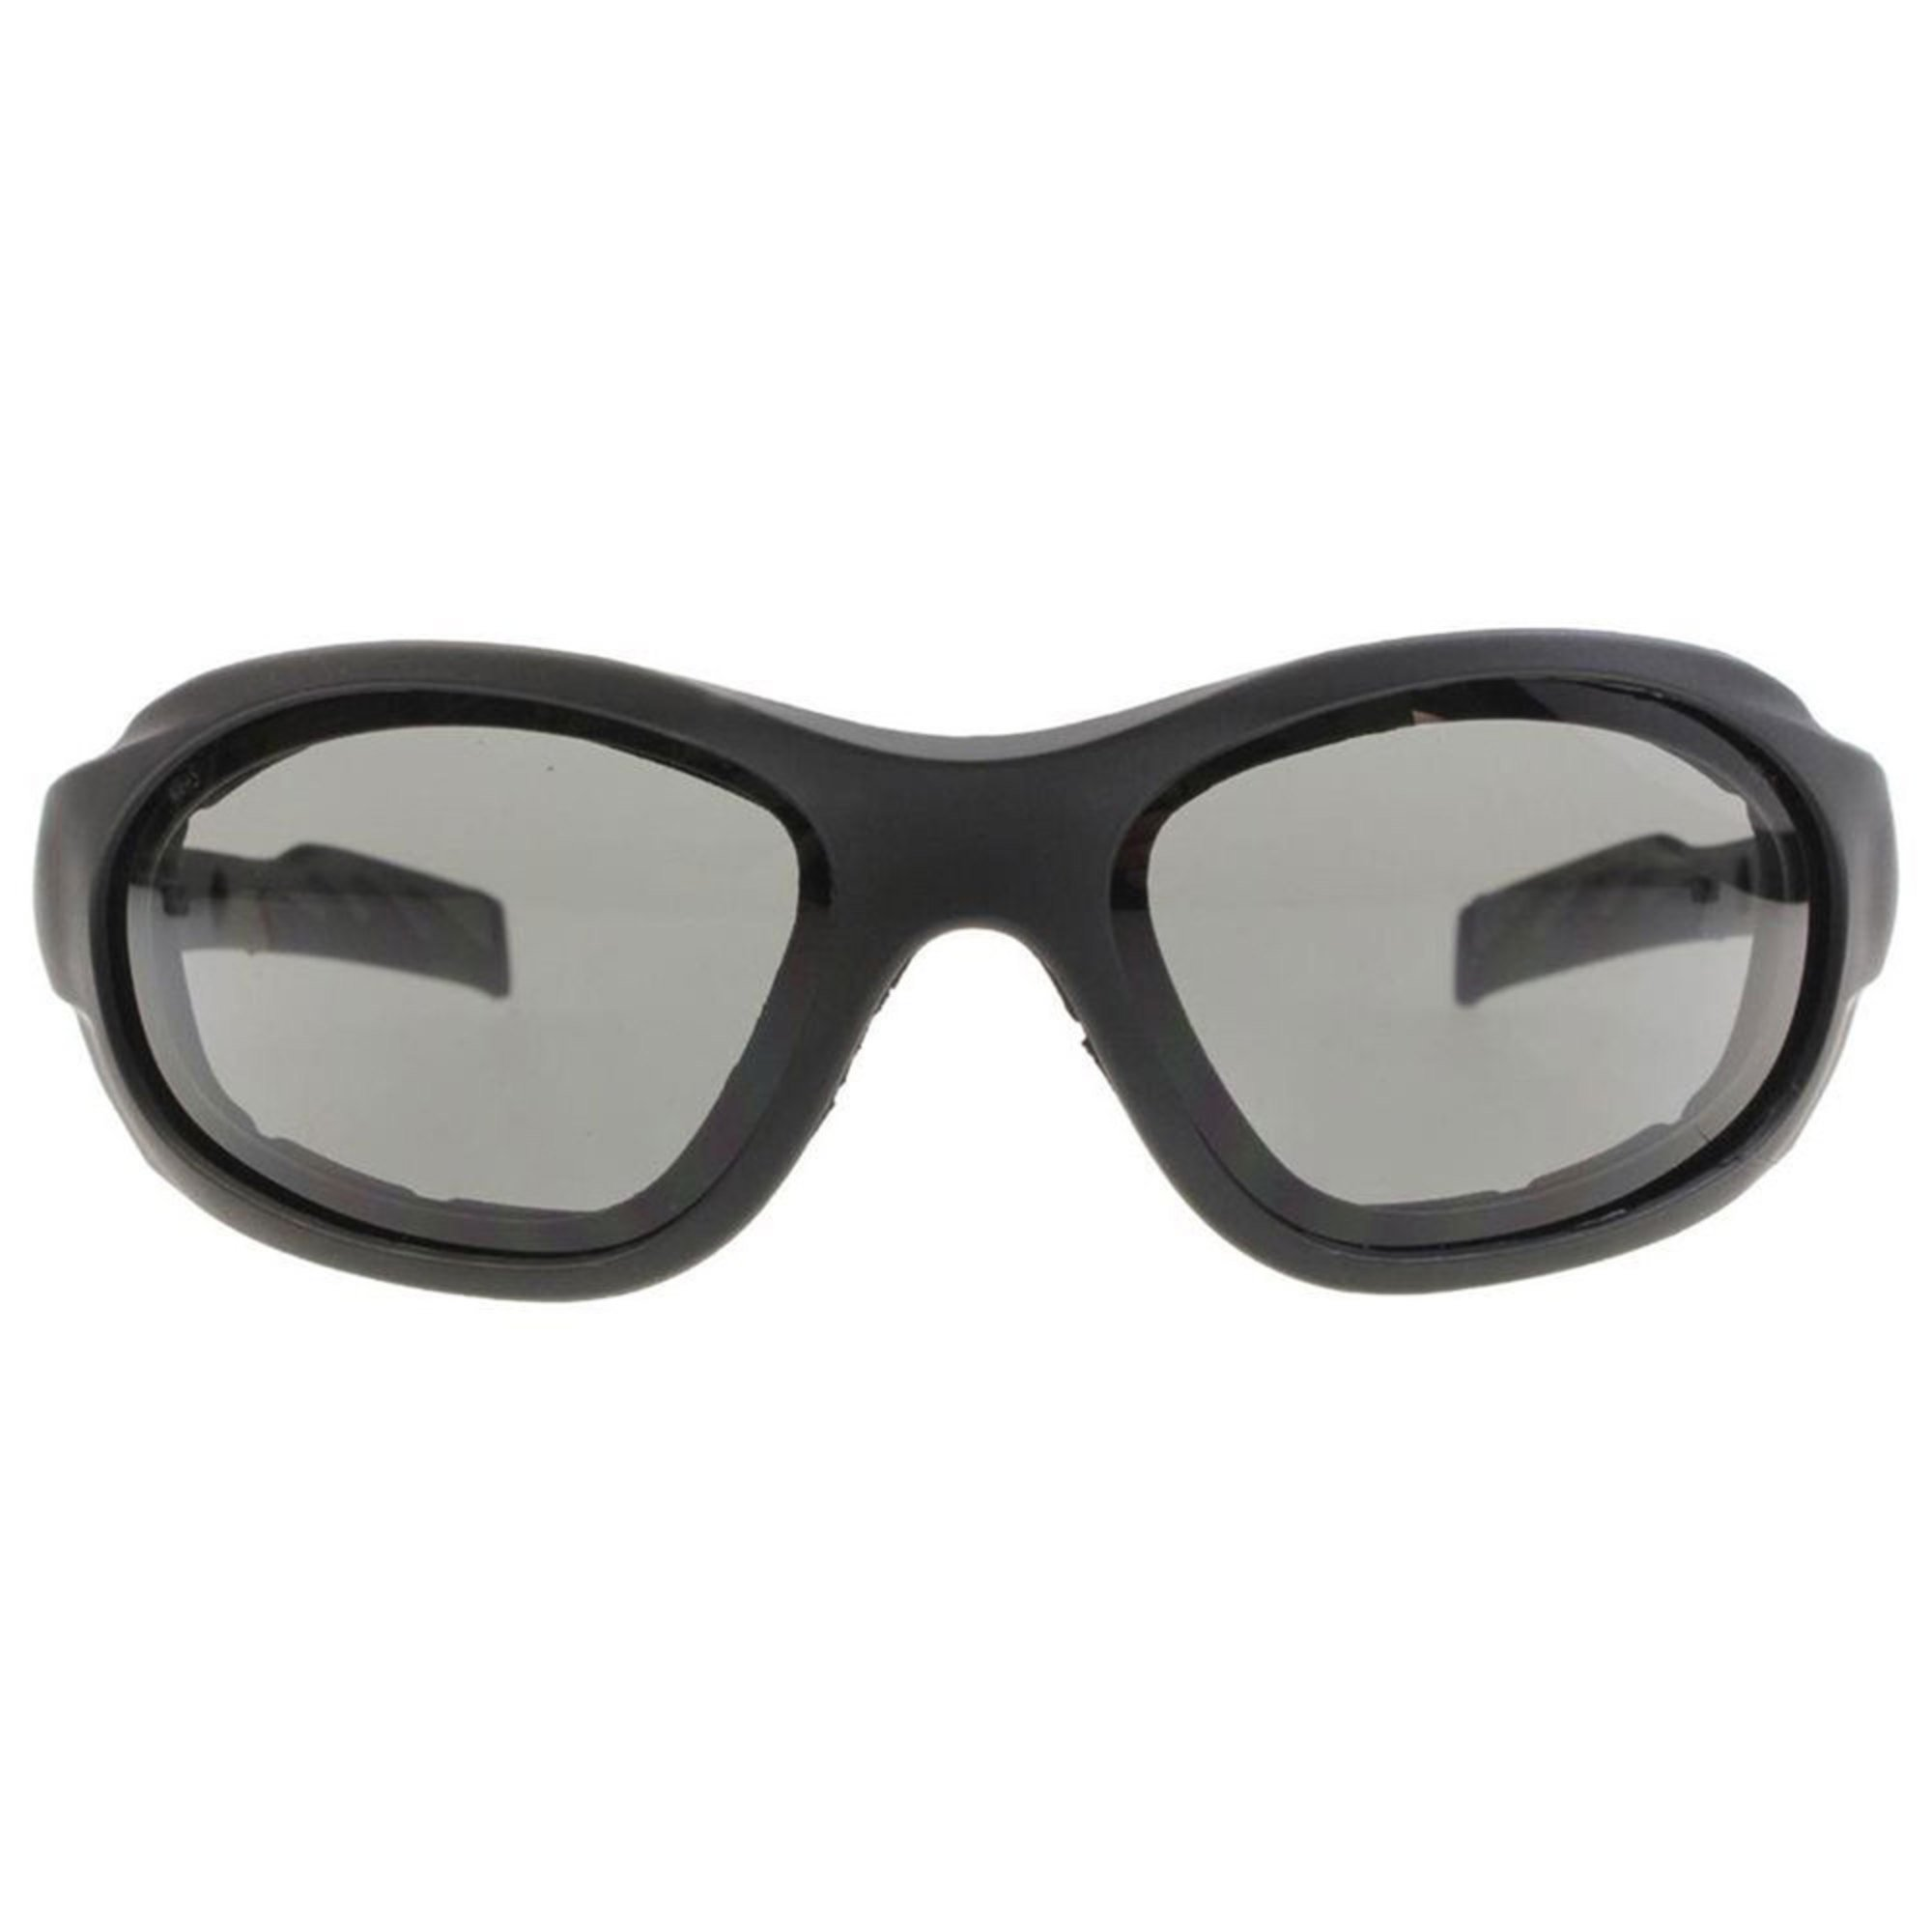 d22c5365fbb7 Wiley X. Wiley X Men's XL 1 Advanced Interchangeable Sunglasses. Product  Rating 4_8